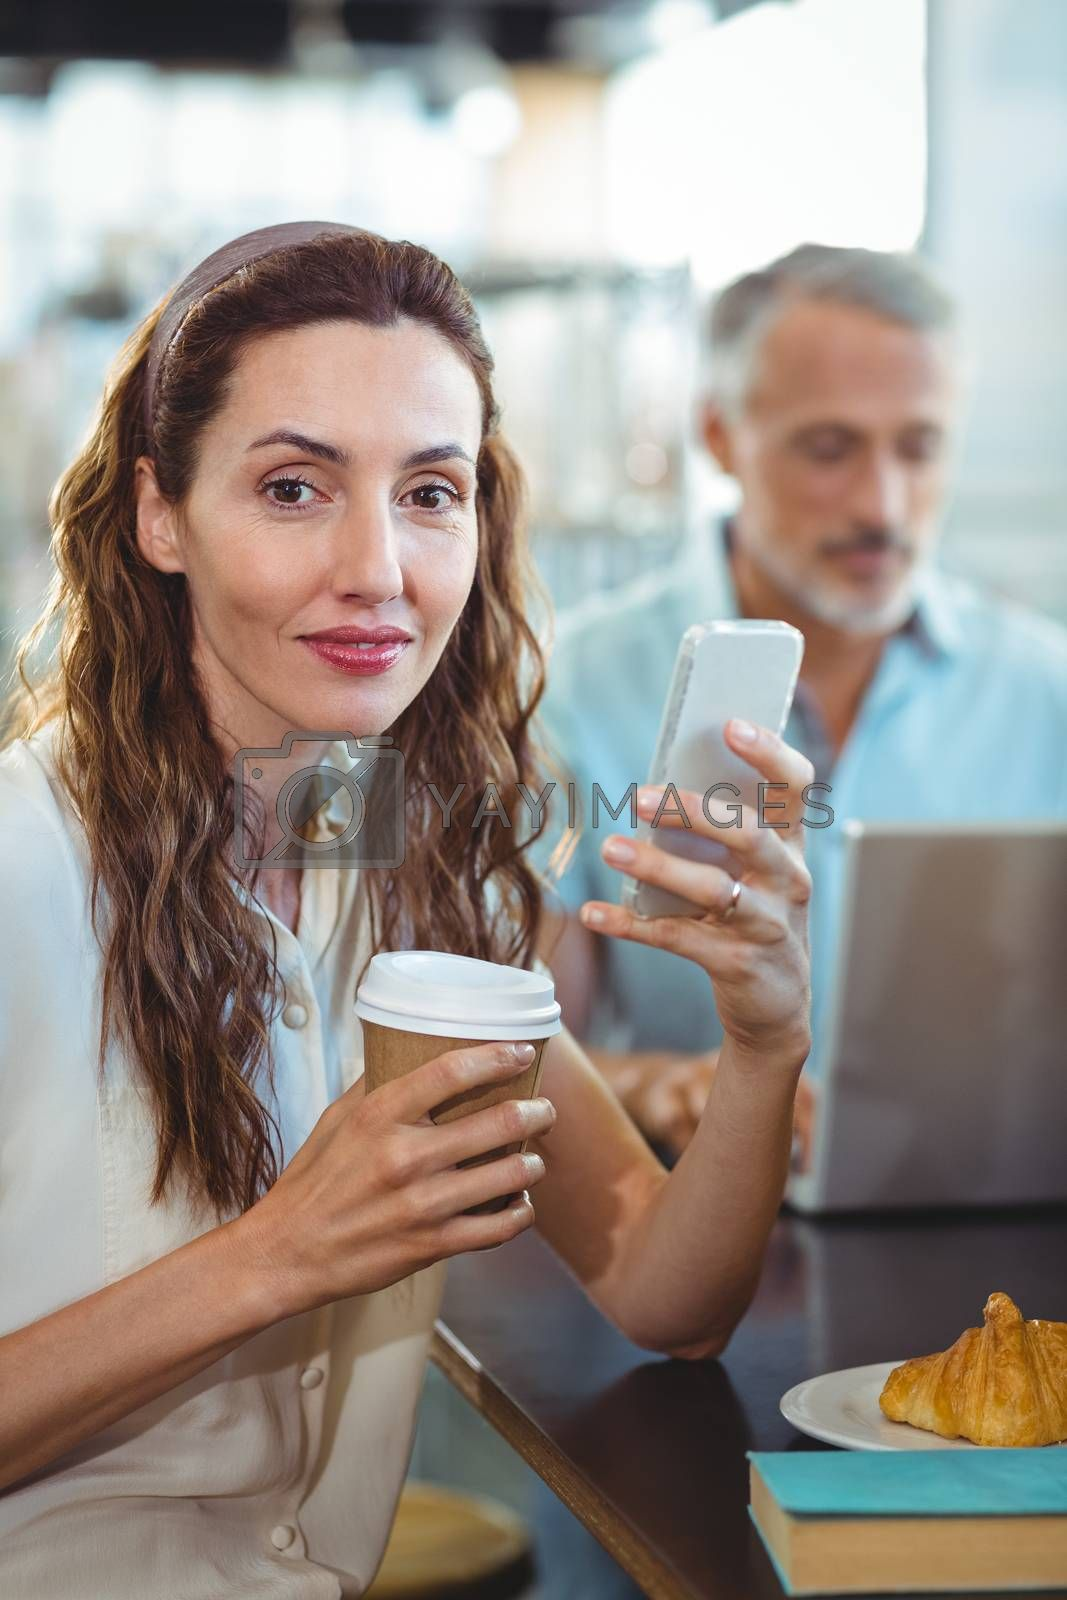 Royalty free image of Pretty brunette looking at camera with smartphone and coffee in her hands by Wavebreakmedia